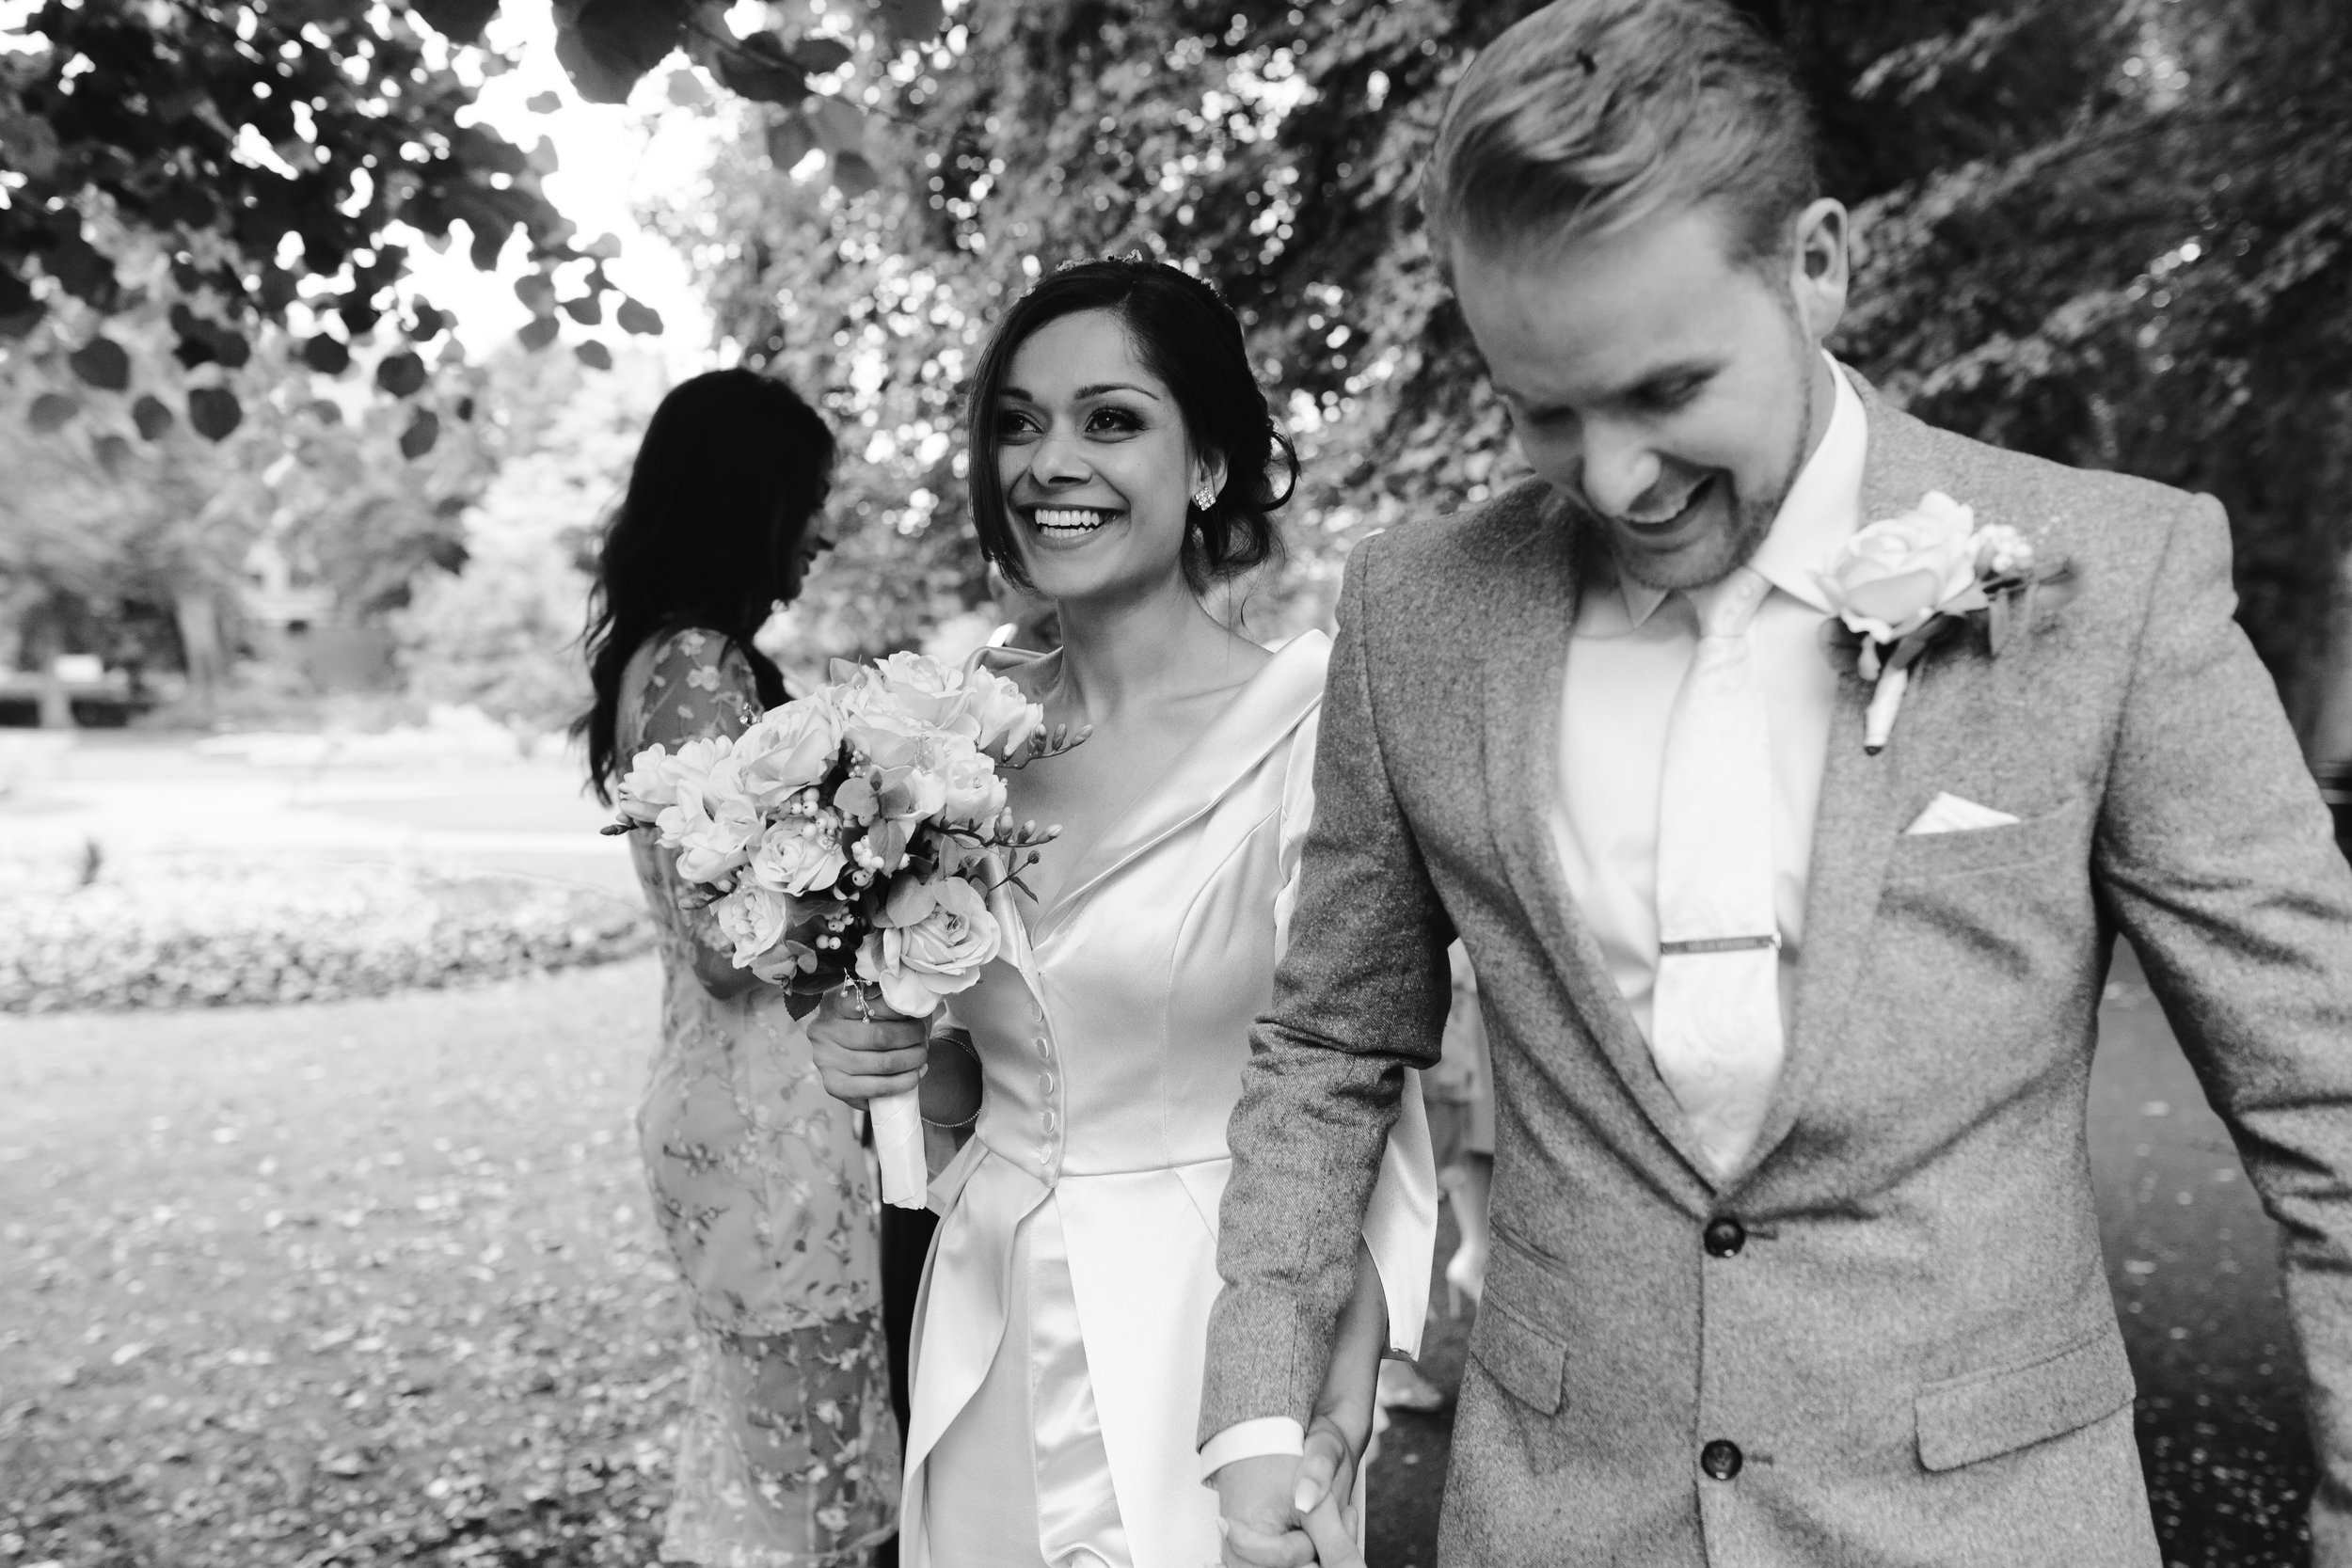 relaxed confetti photo of a happy bride and groom after their lichfield intimate wedding ceremony